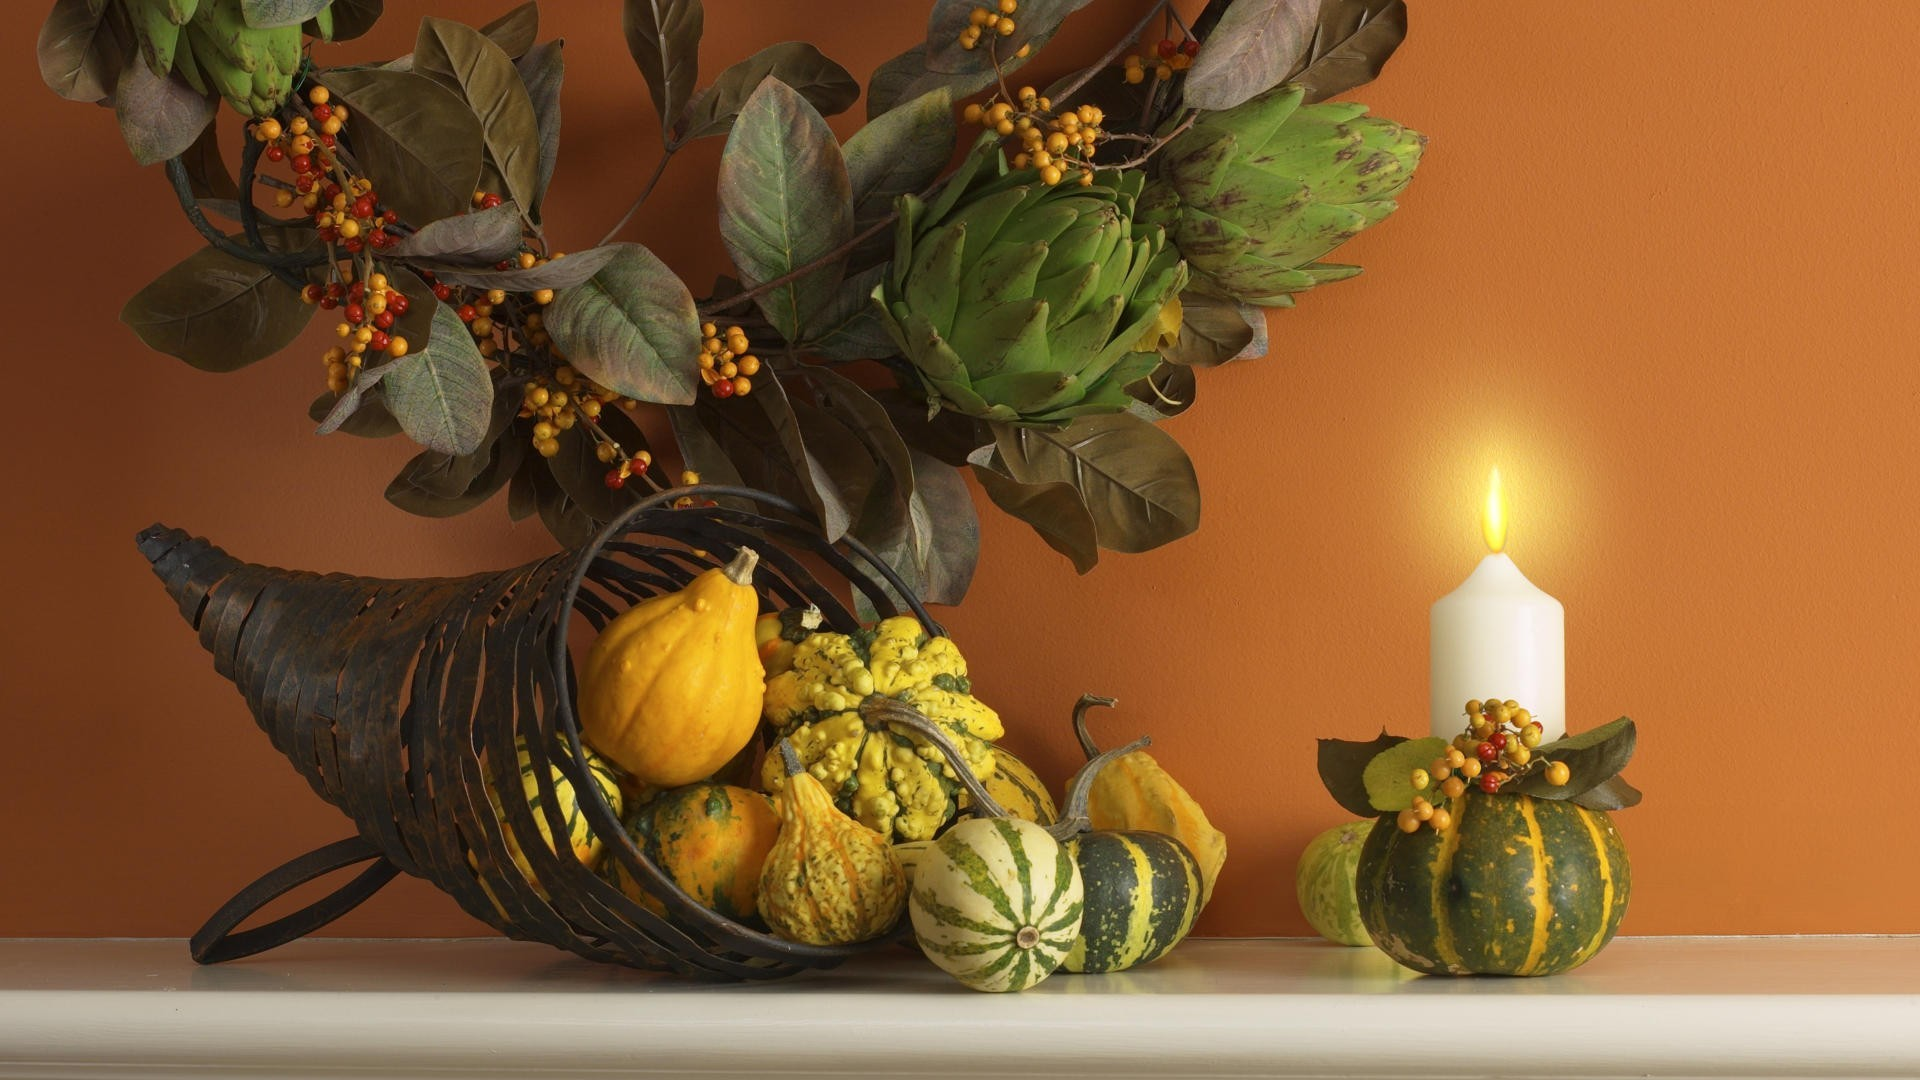 Thanksgiving Wallpaper Backgrounds 57 Images